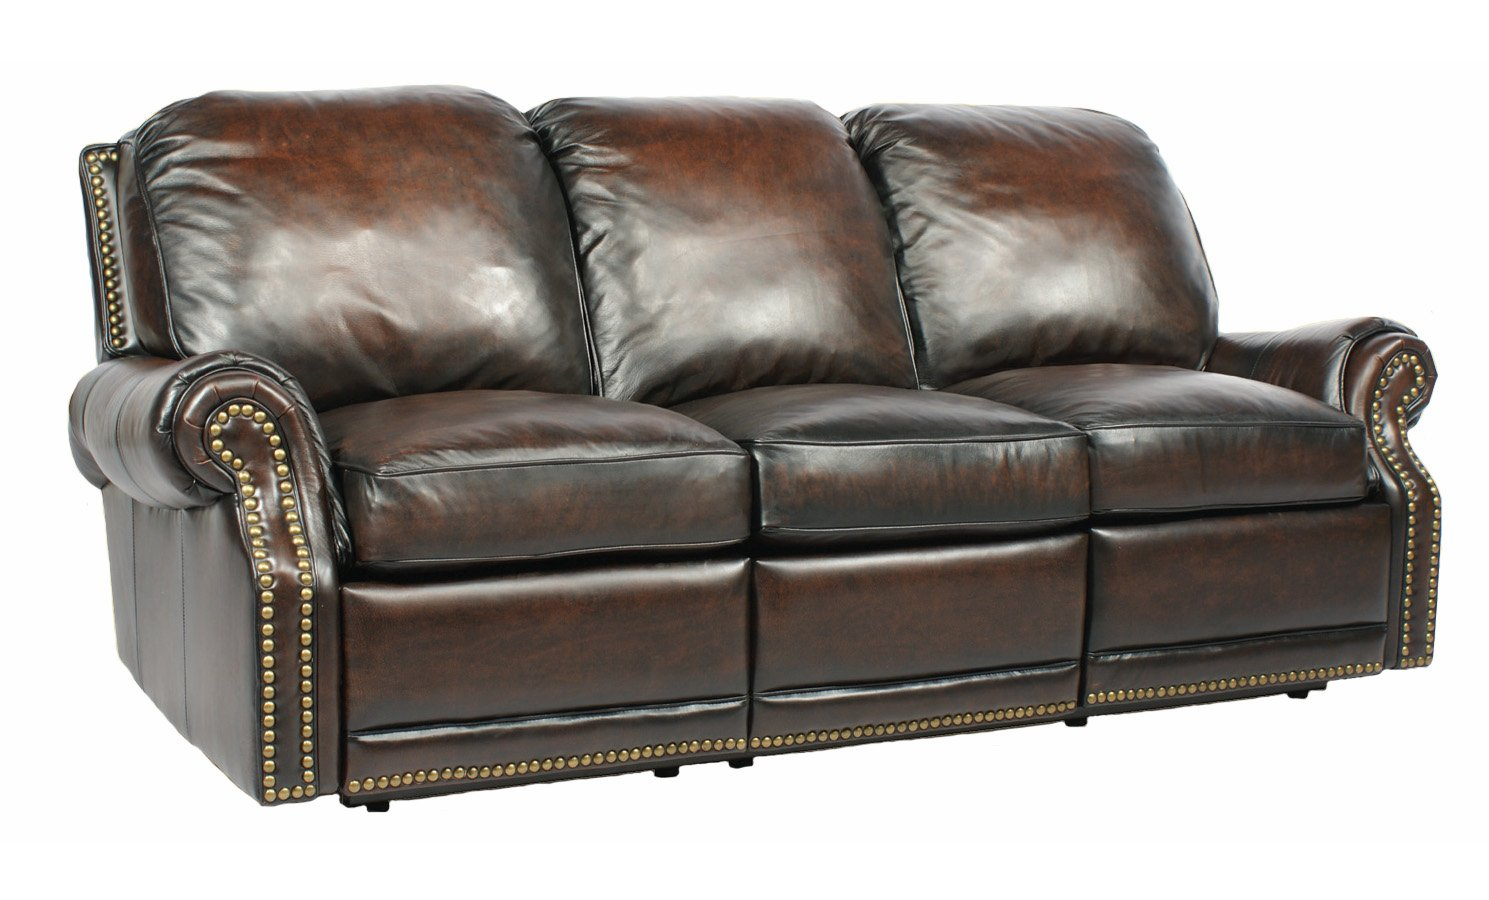 Amazon.com Power Recline BarcaLounger Premier II Electric Reclining Sofa - Stetson Coffee Kitchen u0026 Dining  sc 1 st  Amazon.com & Amazon.com: Power Recline BarcaLounger Premier II Electric ... islam-shia.org